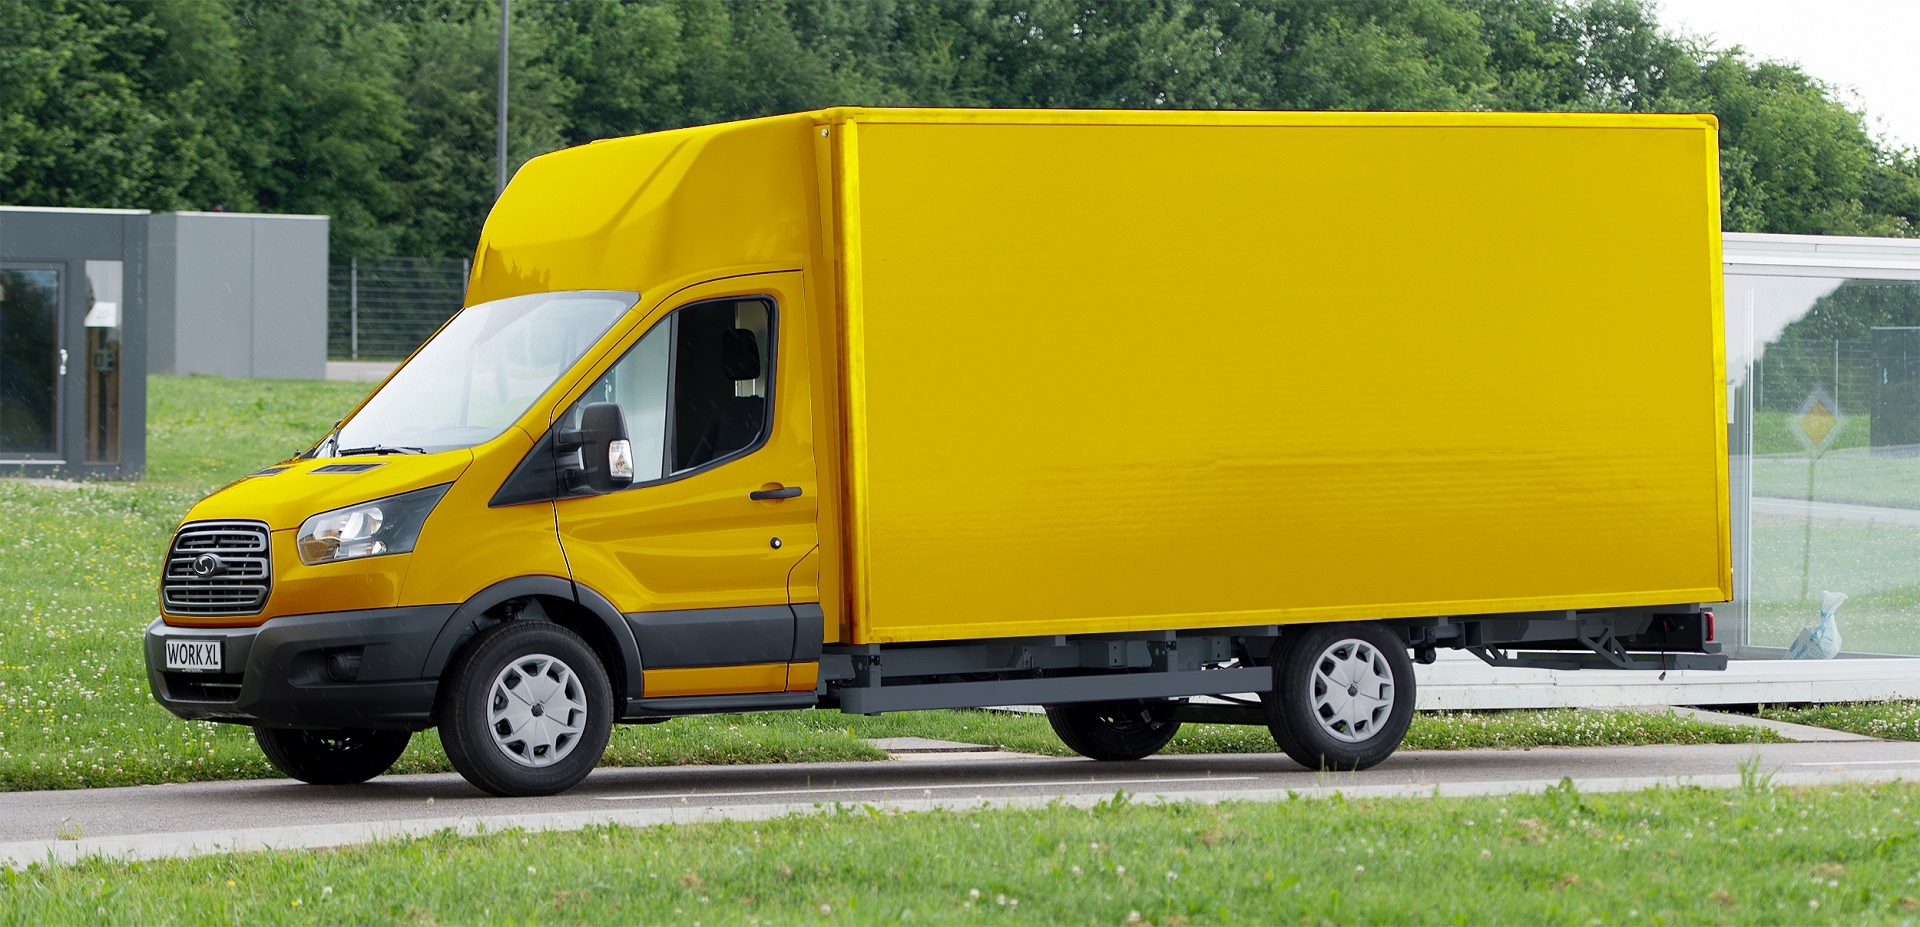 2018 Ford Transit Kamyonet >> Deutsche Post and Ford to build Transit-based electric van